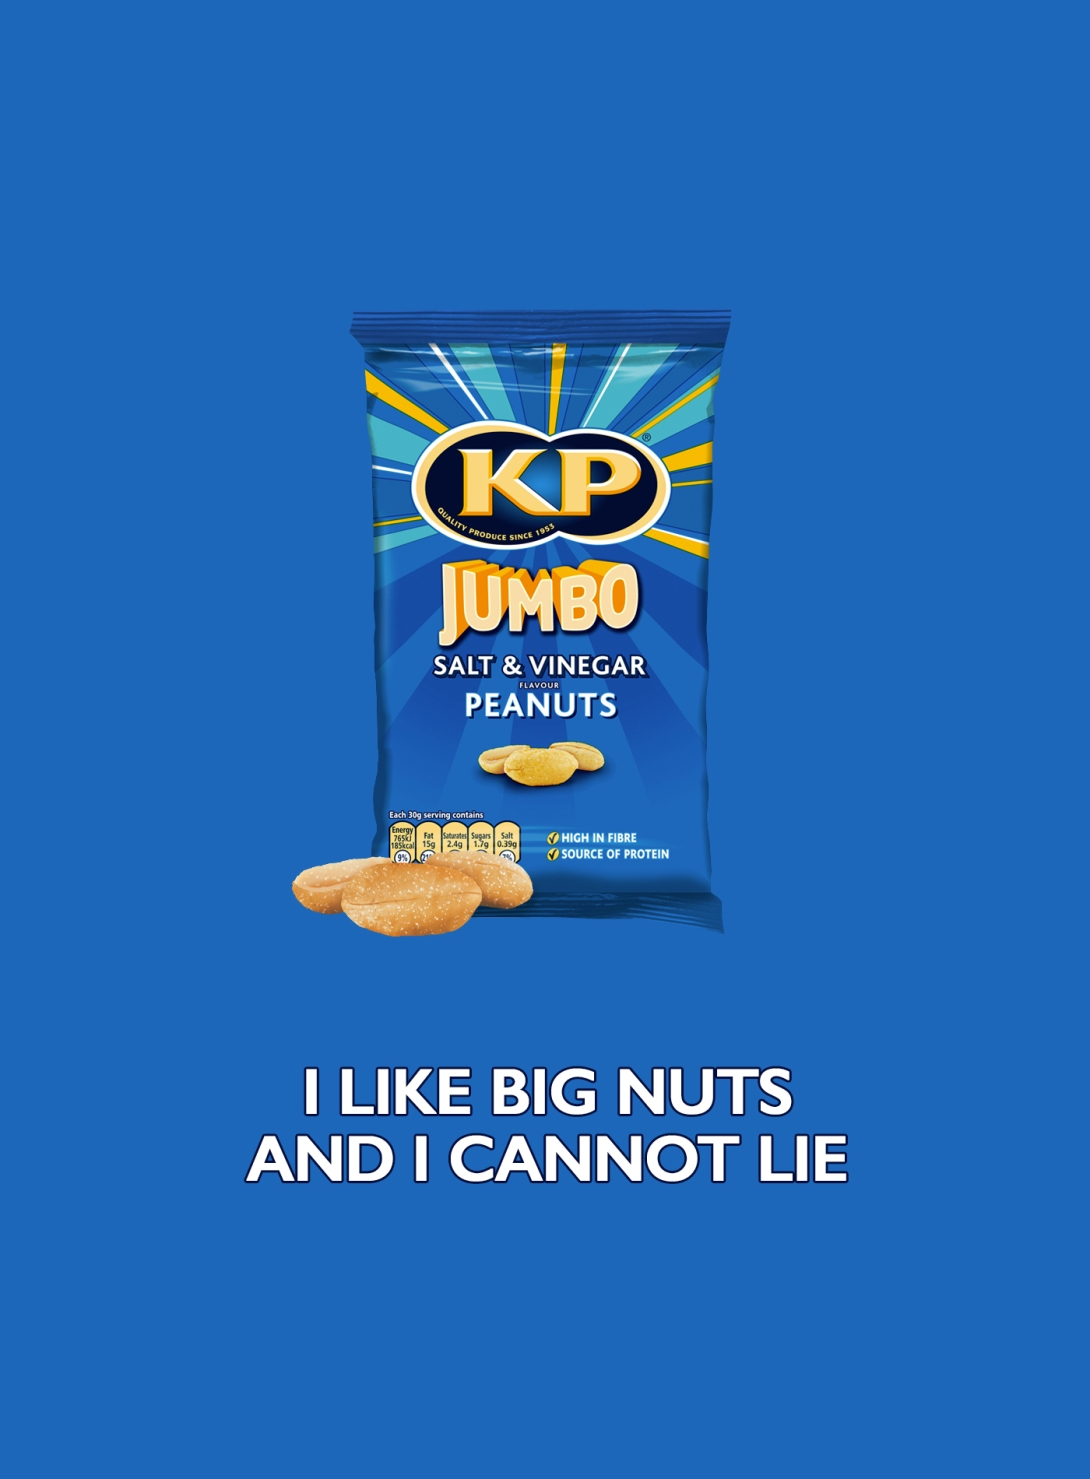 Quick advertising idea for a jumbo peanuts brand - i like big nuts